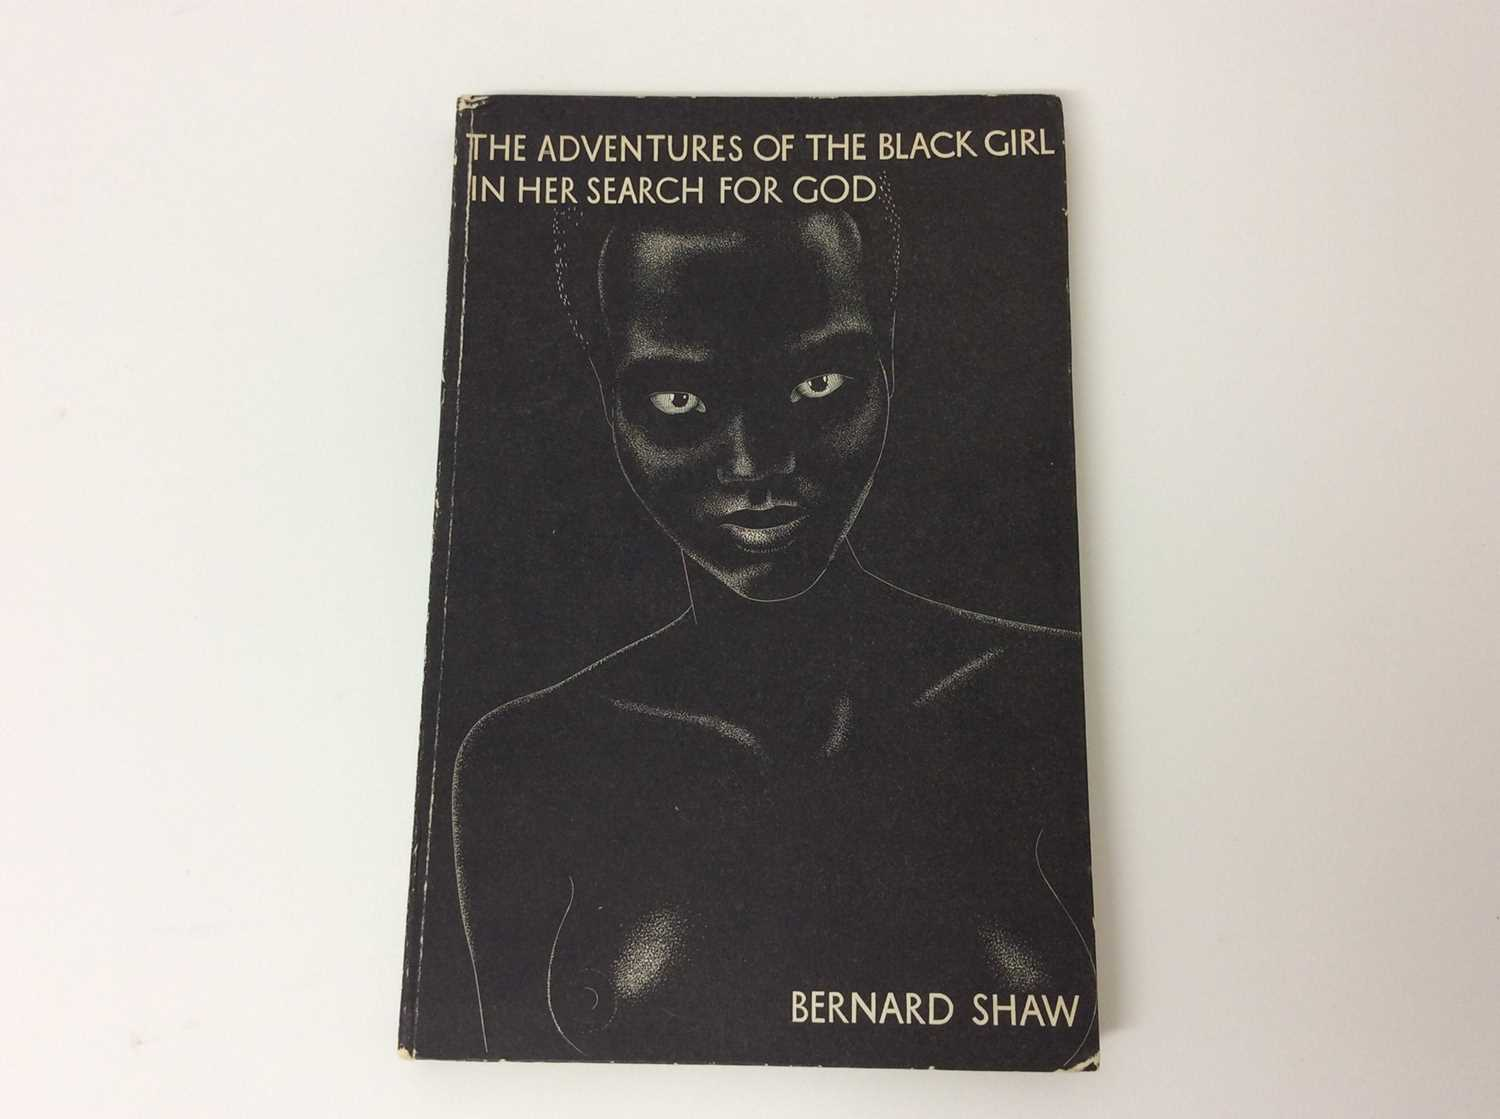 Lot 11 - George Bernard Shaw, The Adventures of the Black Girl in Her Search for God, 1st Ed, 1932